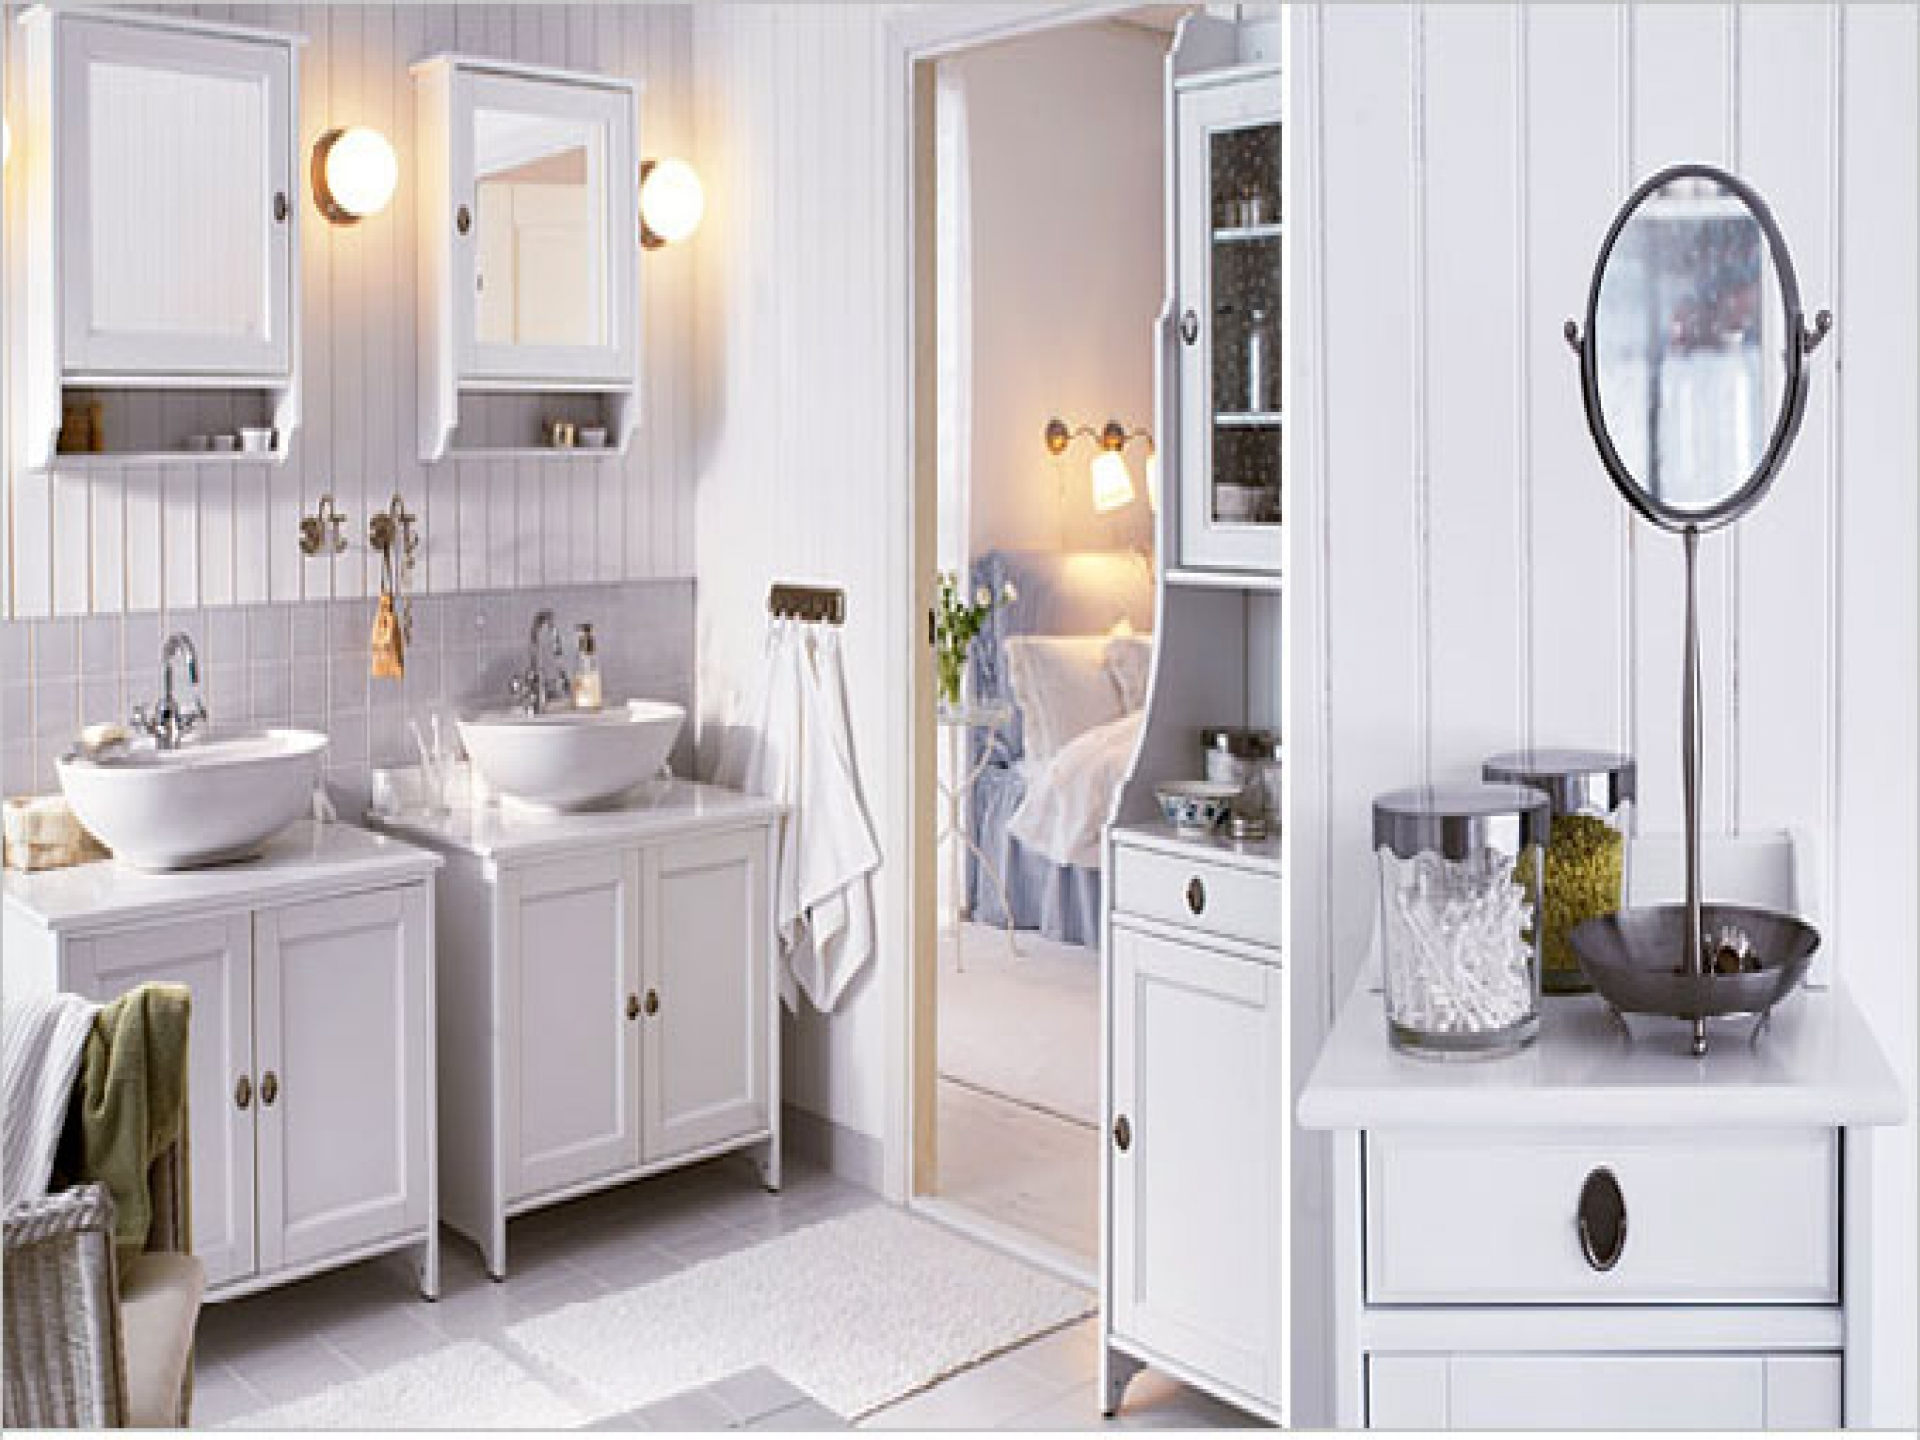 Ikea Bath Cabinet Invades Every Bathroom with Dignity  HomesFeed